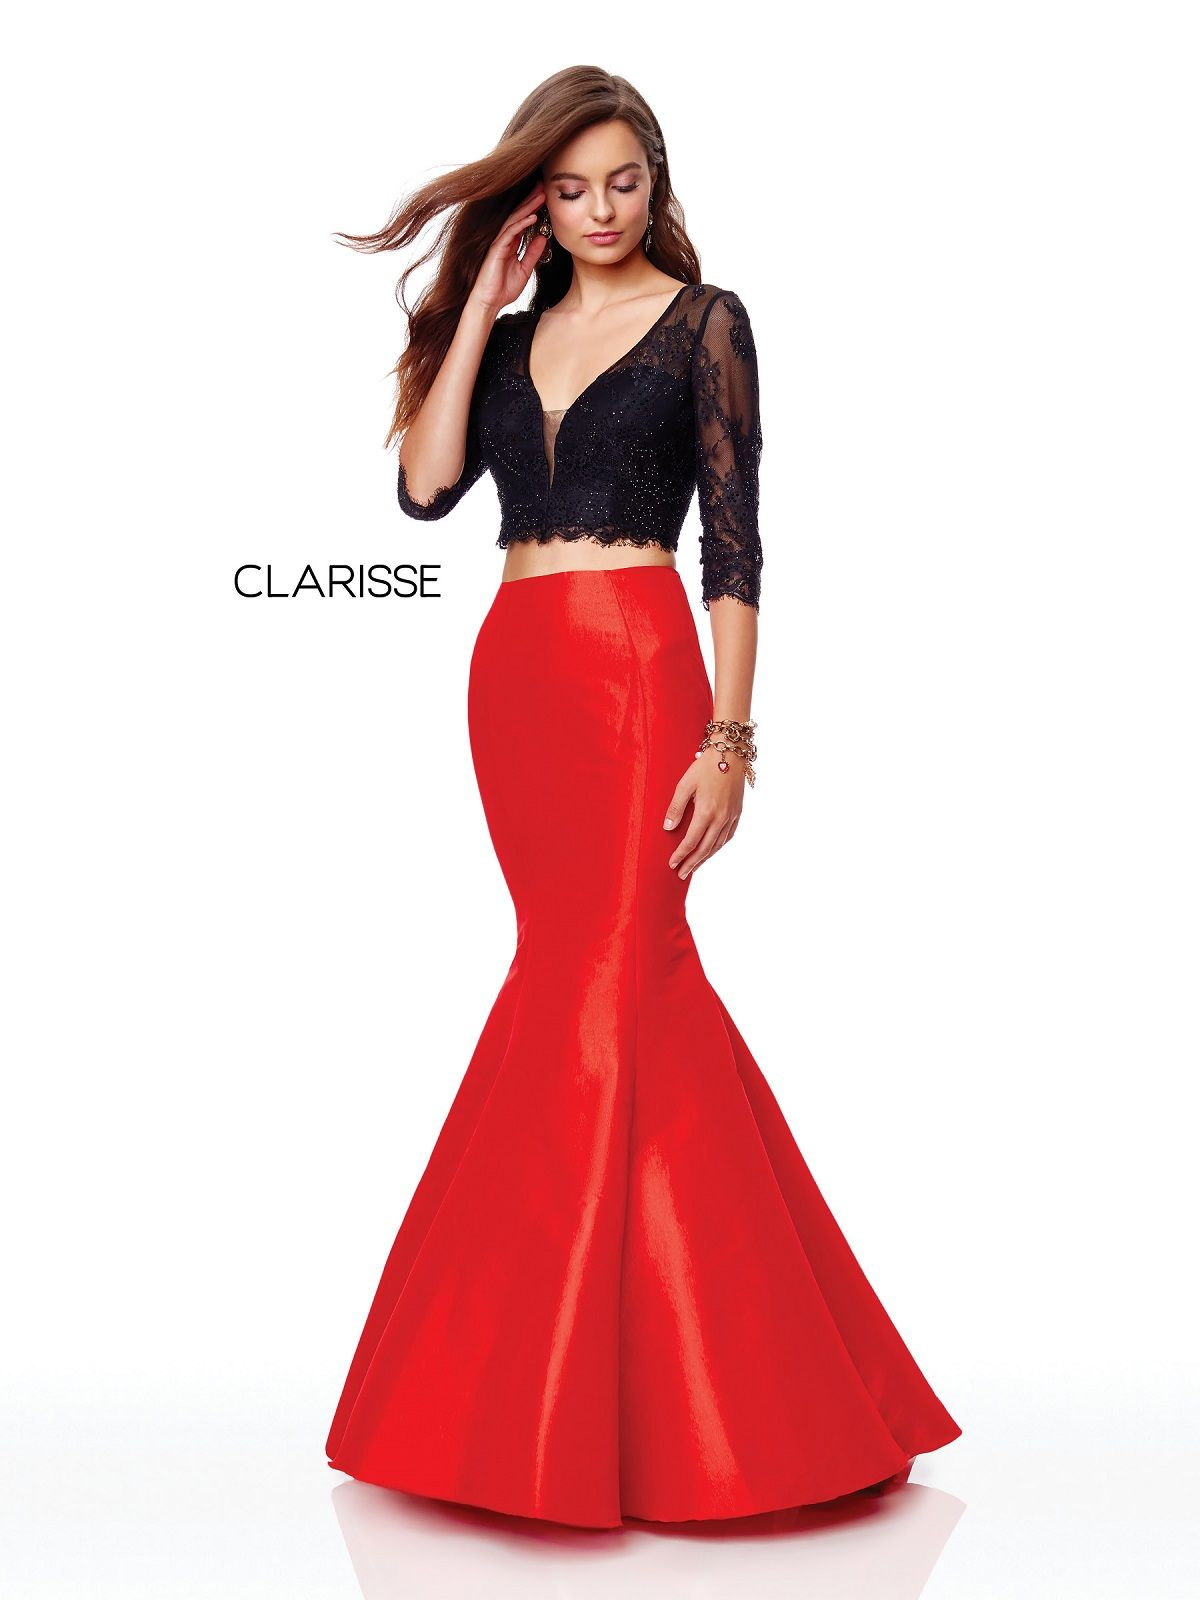 Clarisse Dress 3722 Two Piece Mermaid Prom Dress Prom 2019